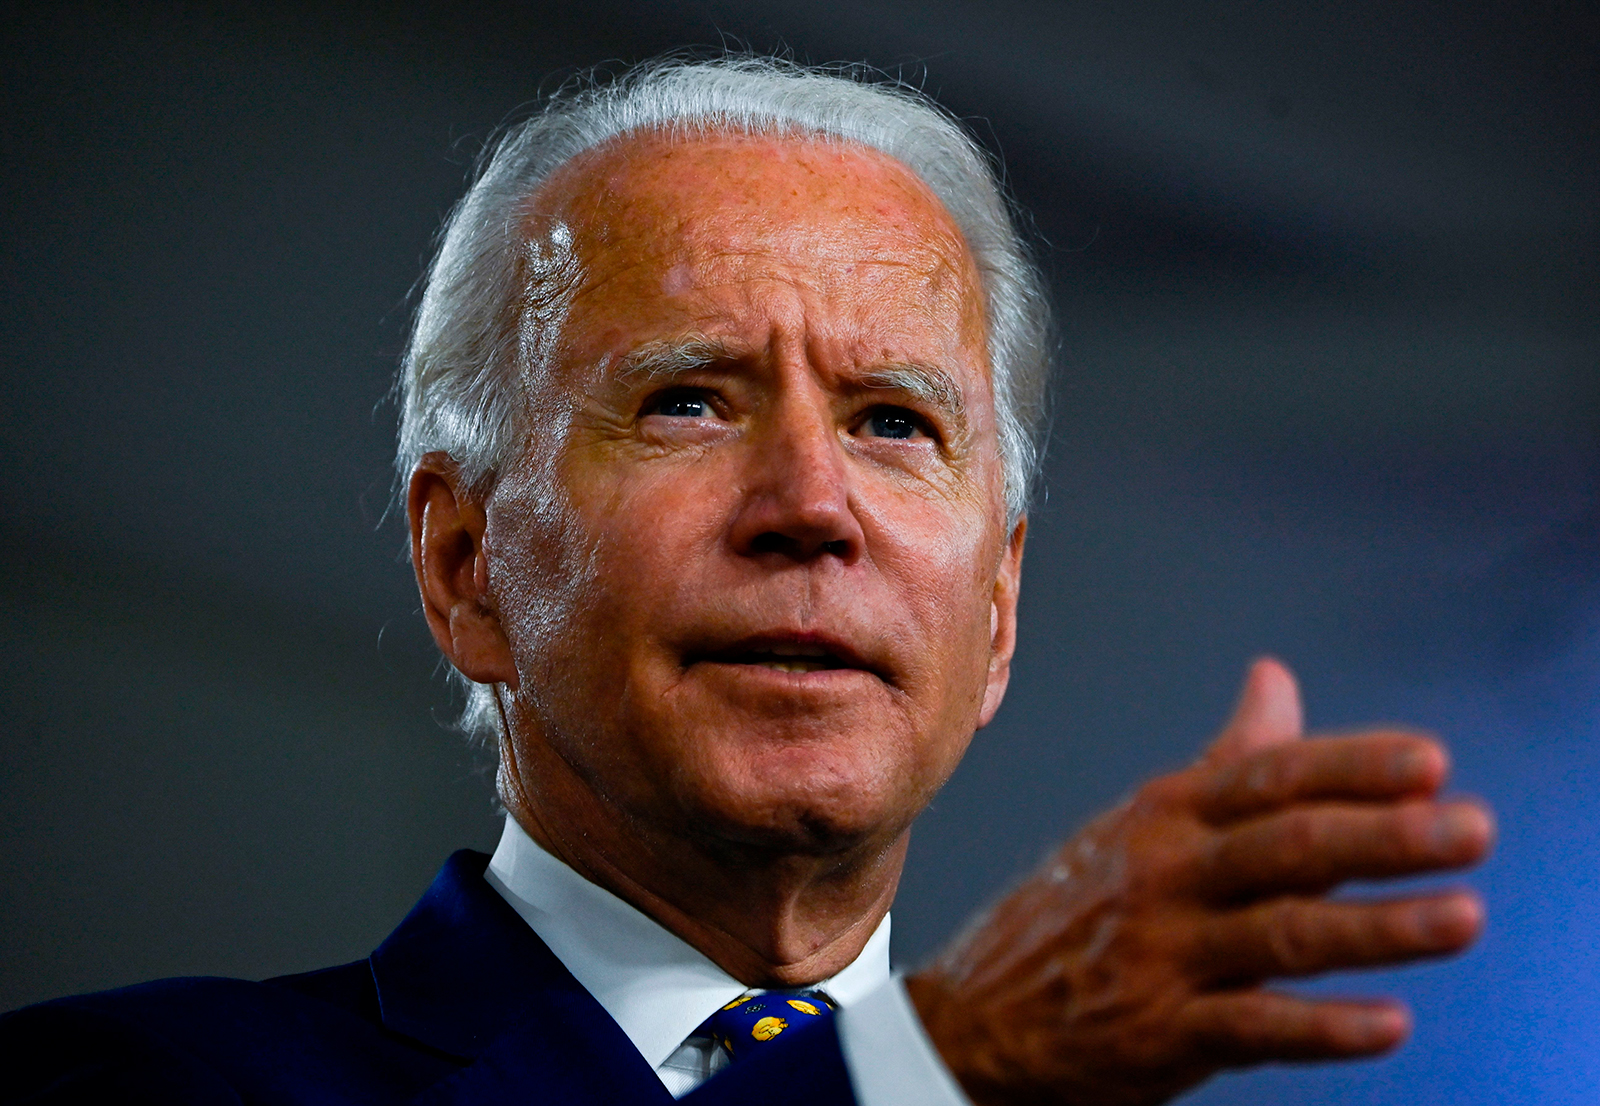 Congress spars over Russia's intentions in spreading disinformation about Biden